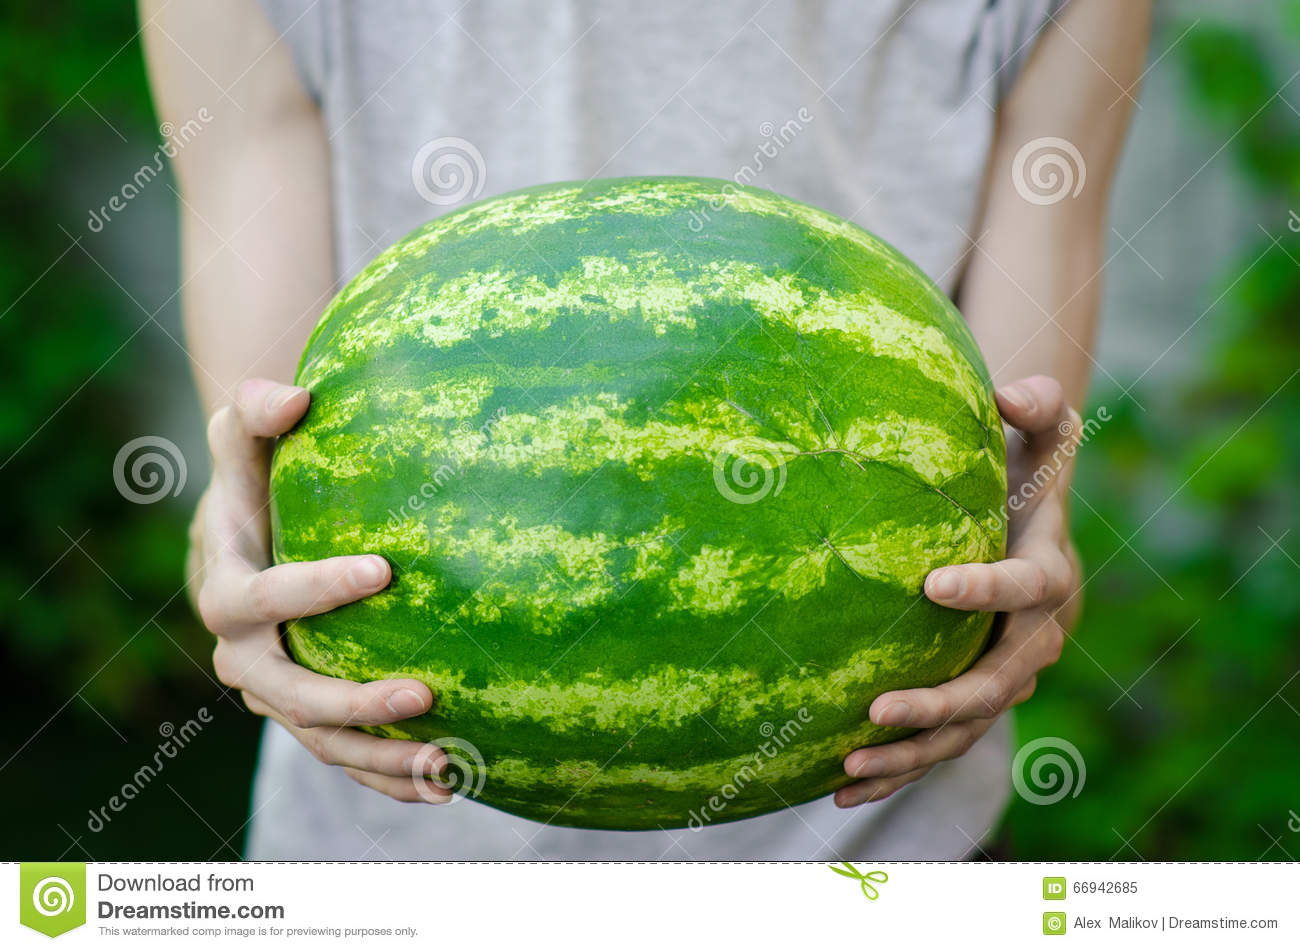 Summer and fresh watermelon theme: a man holds a watermelon on the green background